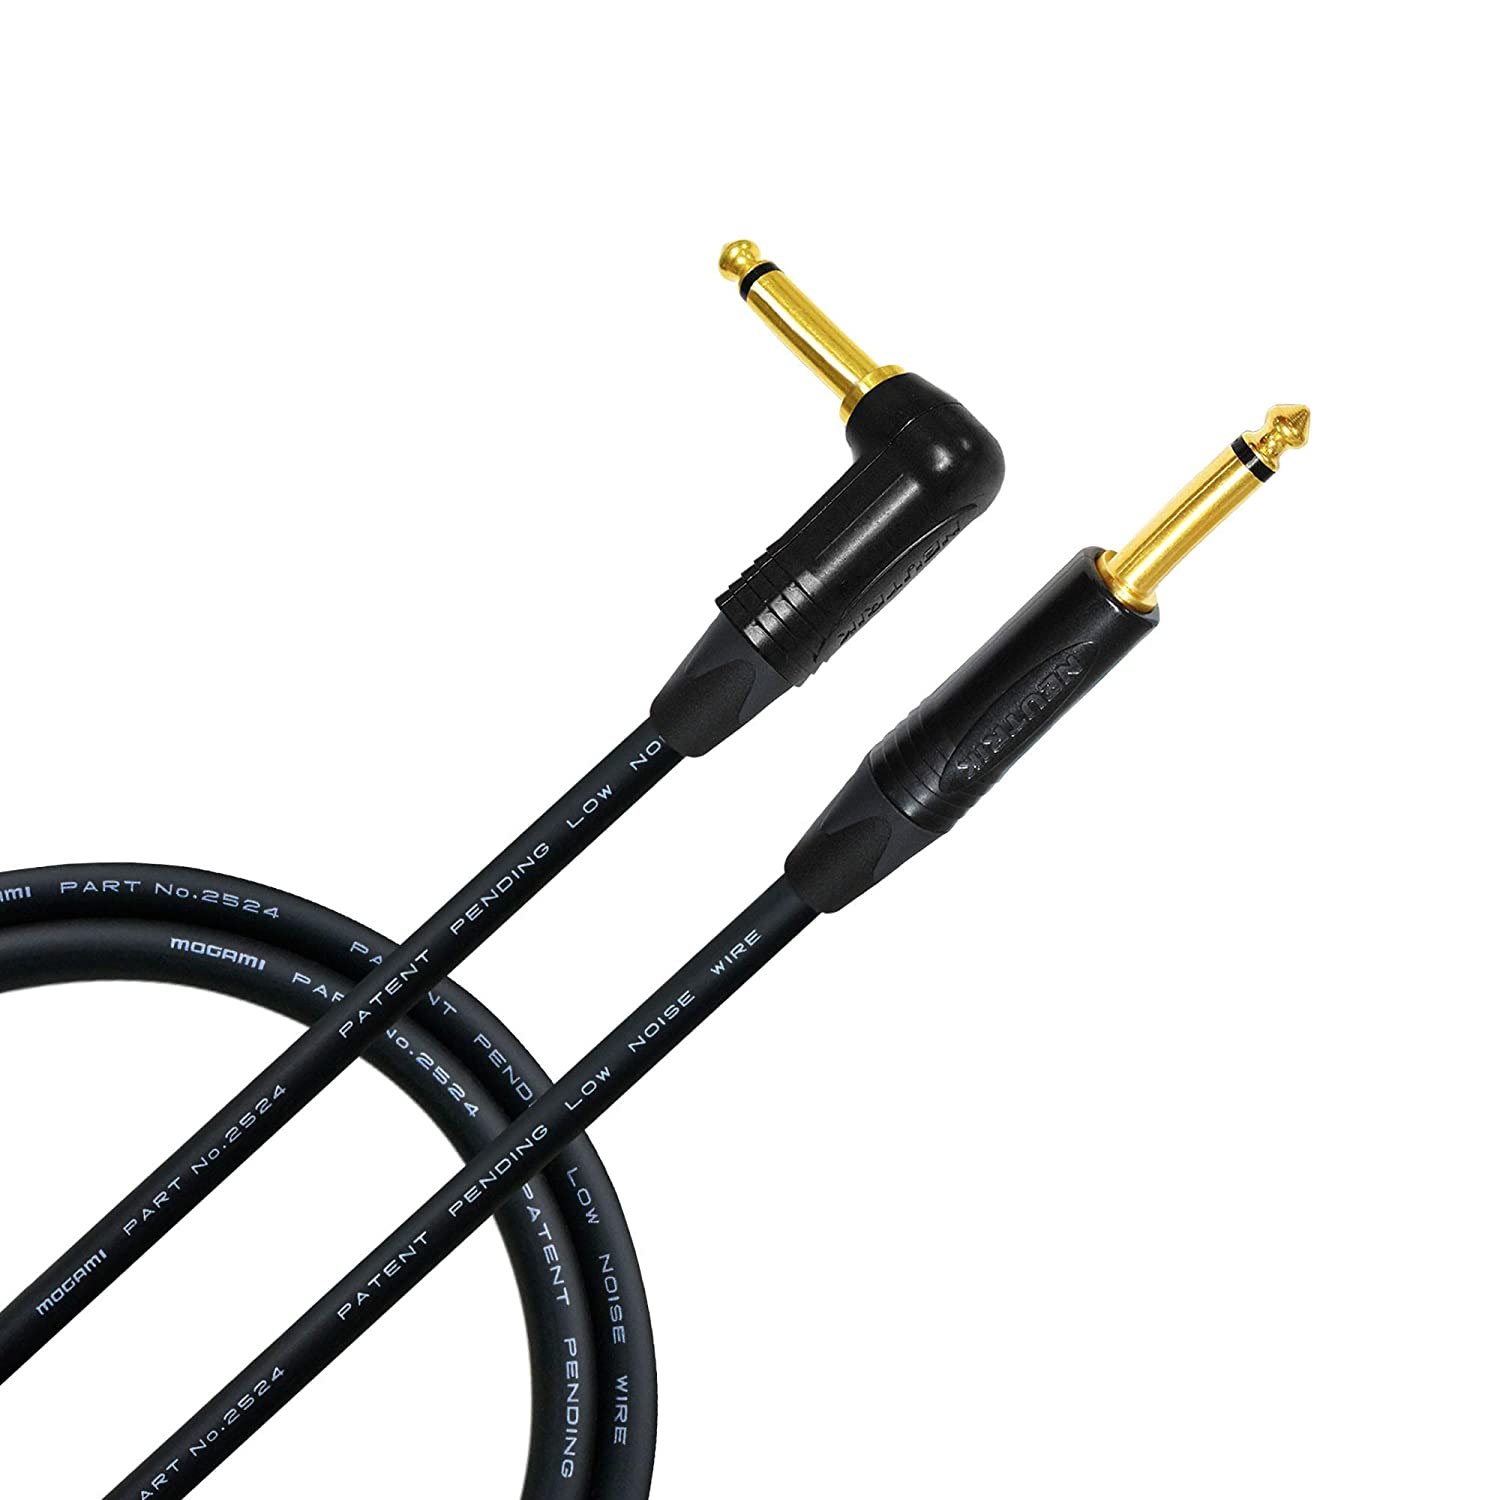 2 Foot - Guitar Bass Instrument Cable CUSTOM MADE By WORLDS BEST CABLES – using Mogami 2524 wire and Neutrik NP2RX-B & NP2X-B ¼ Inch (6.35mm) Gold TS ...